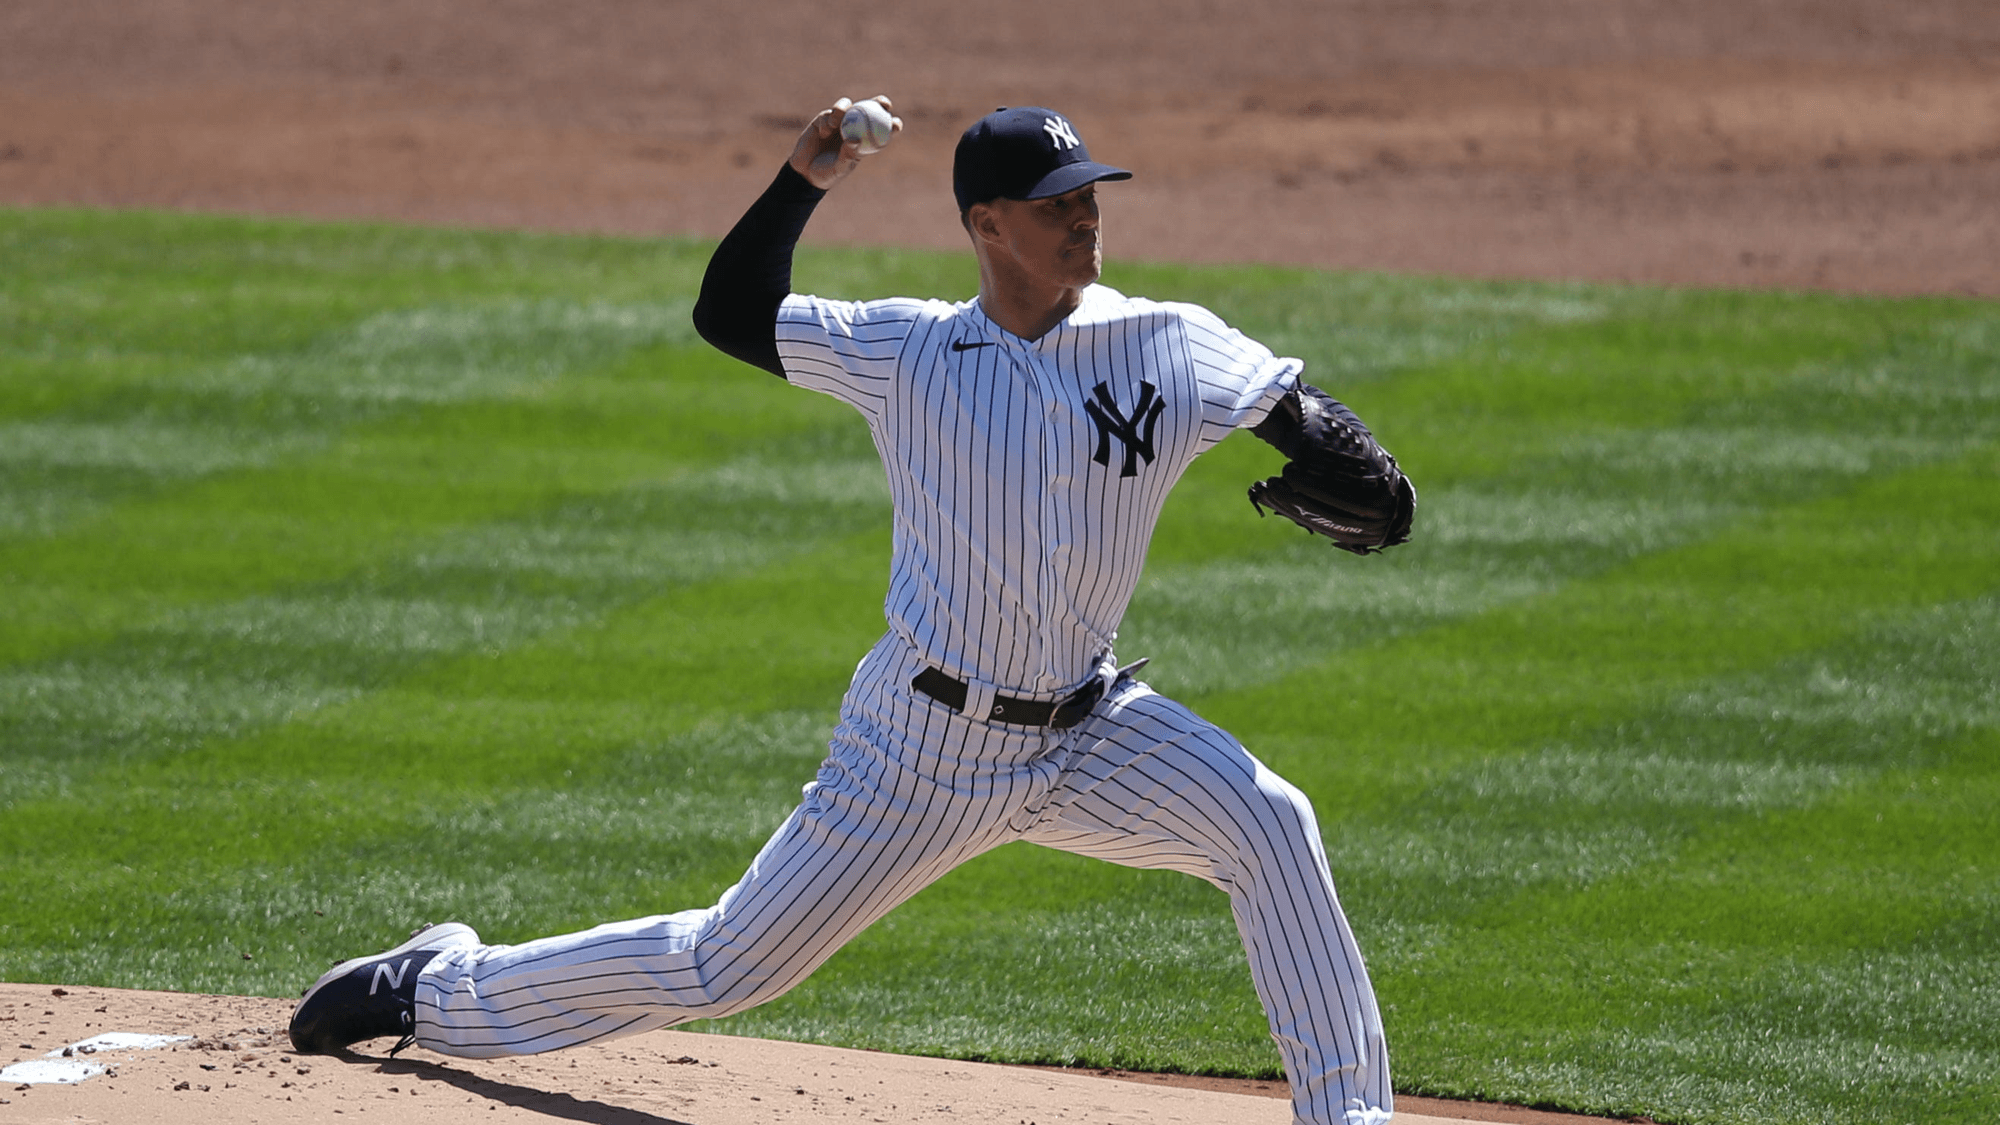 Braves vs Yankees Betting Preview: Struggling World Series Contenders Clash in the Bronx